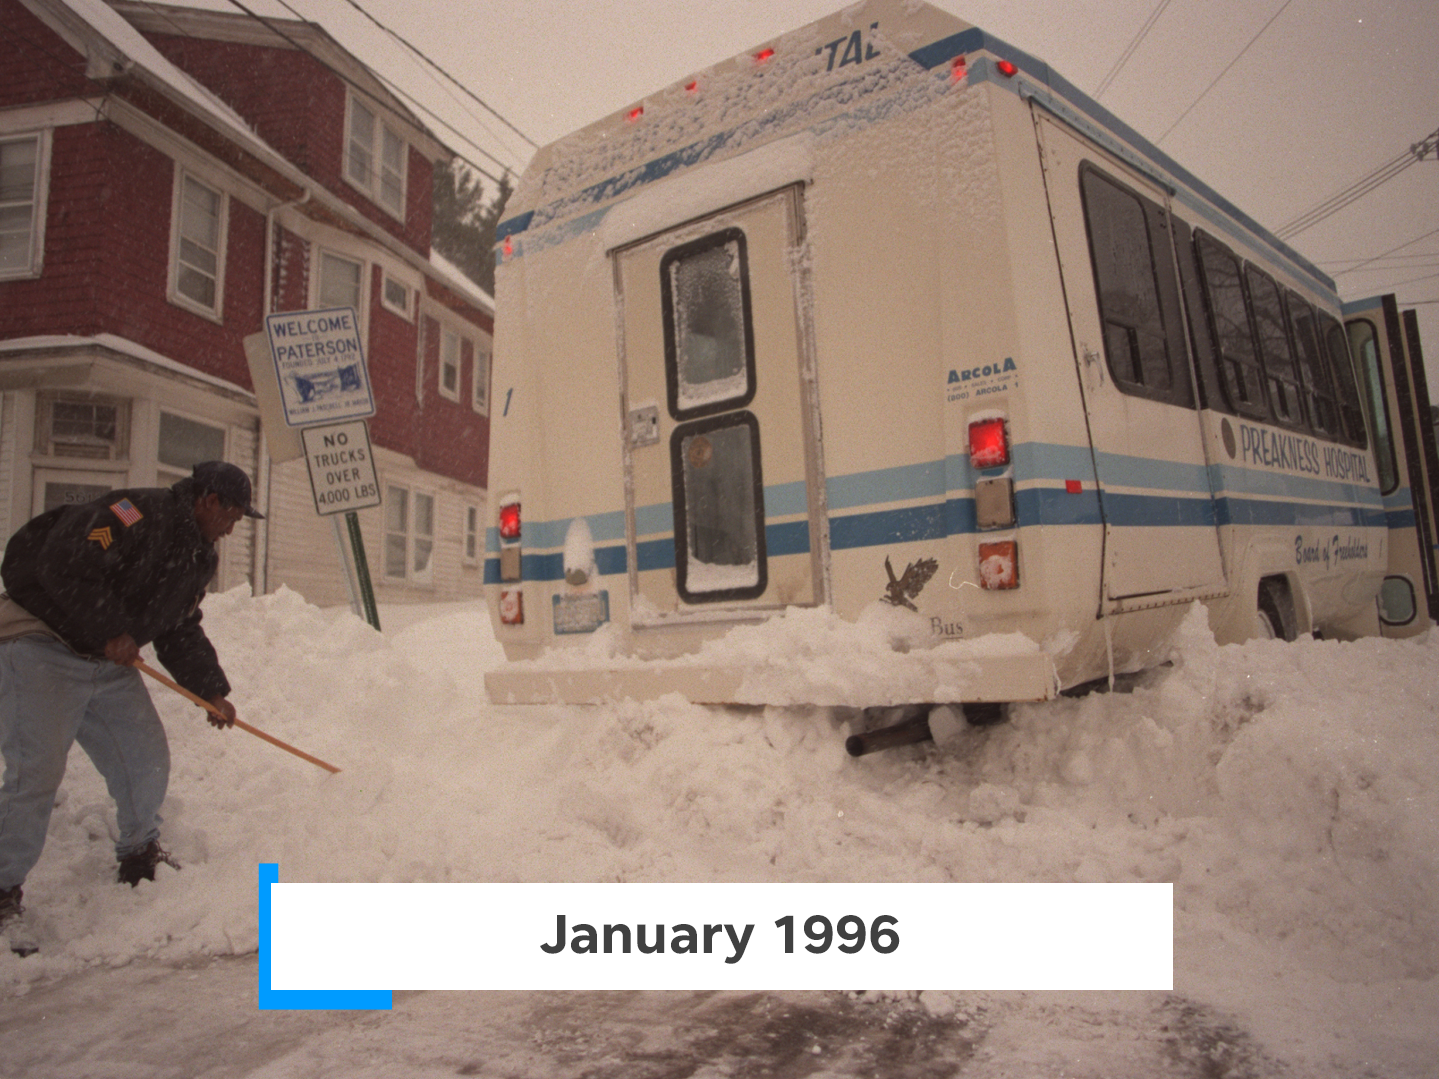 The storm of 1996 buried northern New Jersey under 30 inches of snow.